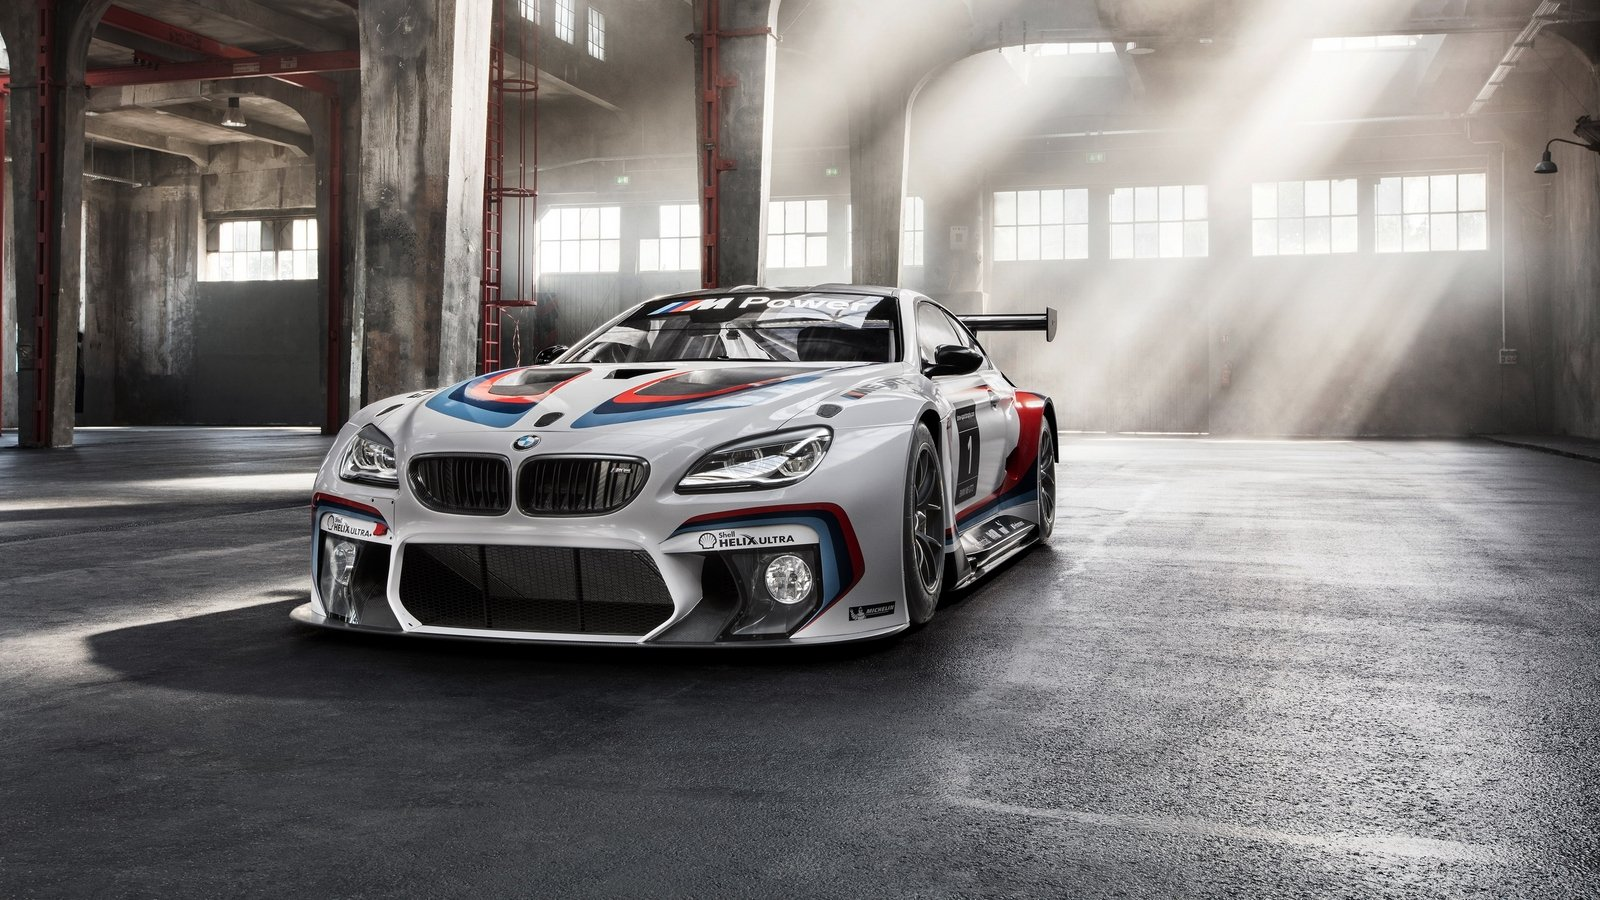 2016 bmw m6 gt3 picture 646109 car review top speed. Black Bedroom Furniture Sets. Home Design Ideas